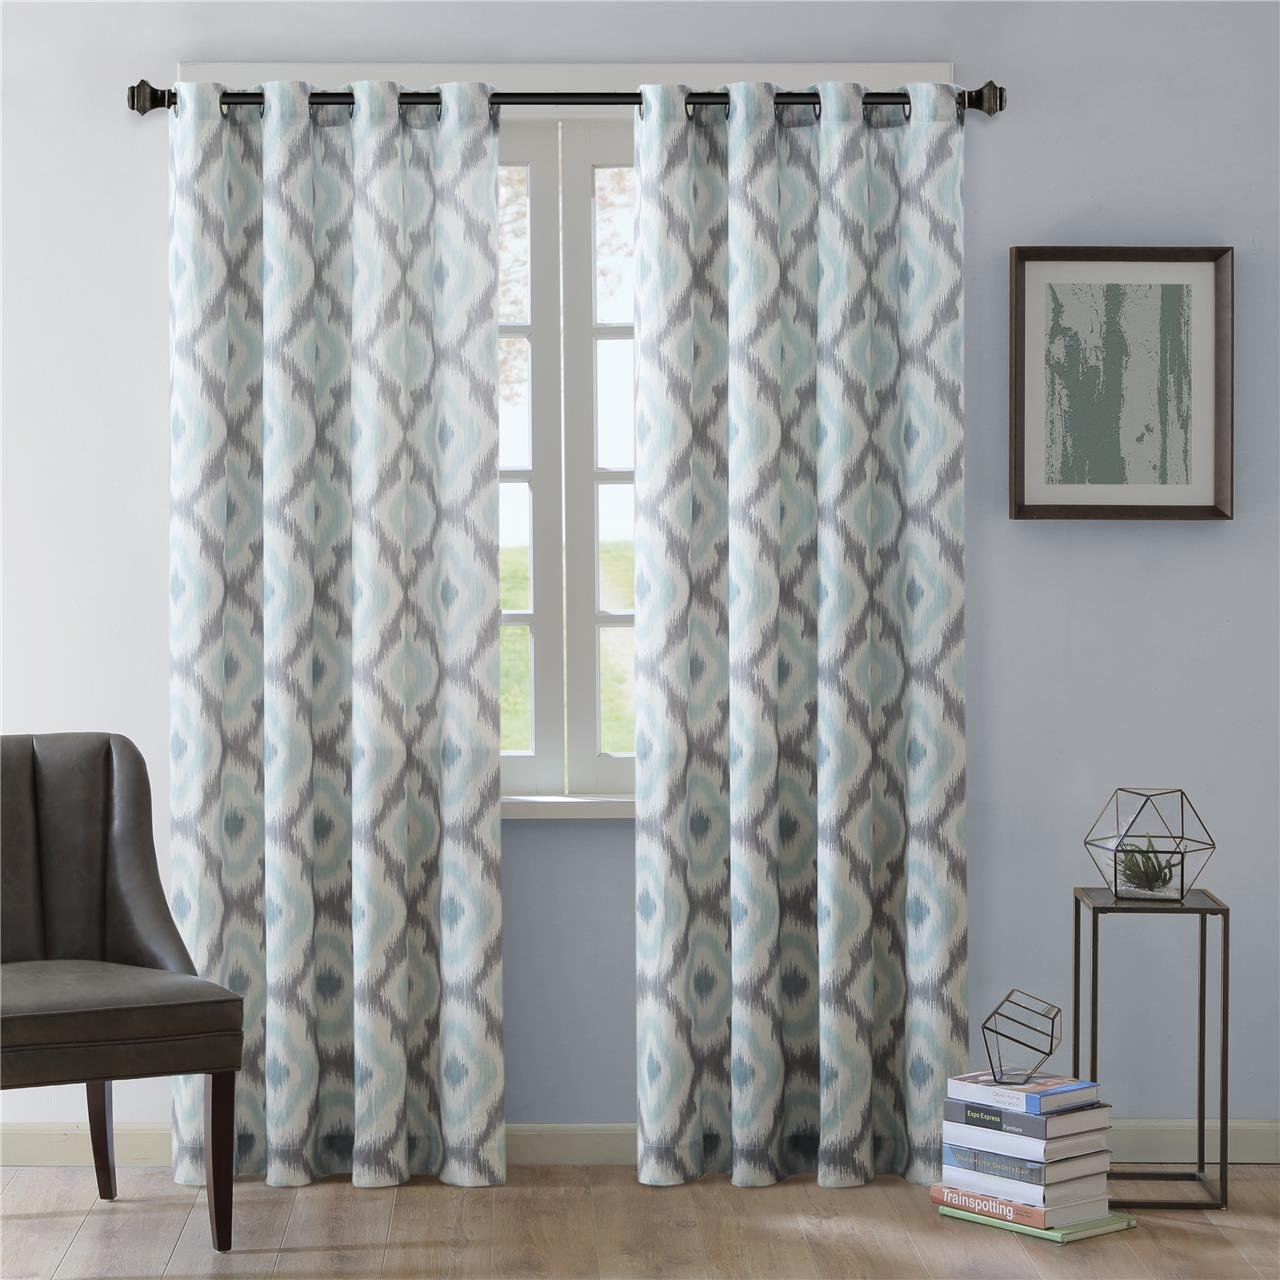 curtain home cute wal panels darkening yellow panel with walmart bedroom window interior charming mart drapes draperies curta room accessories ideas treatments curtains